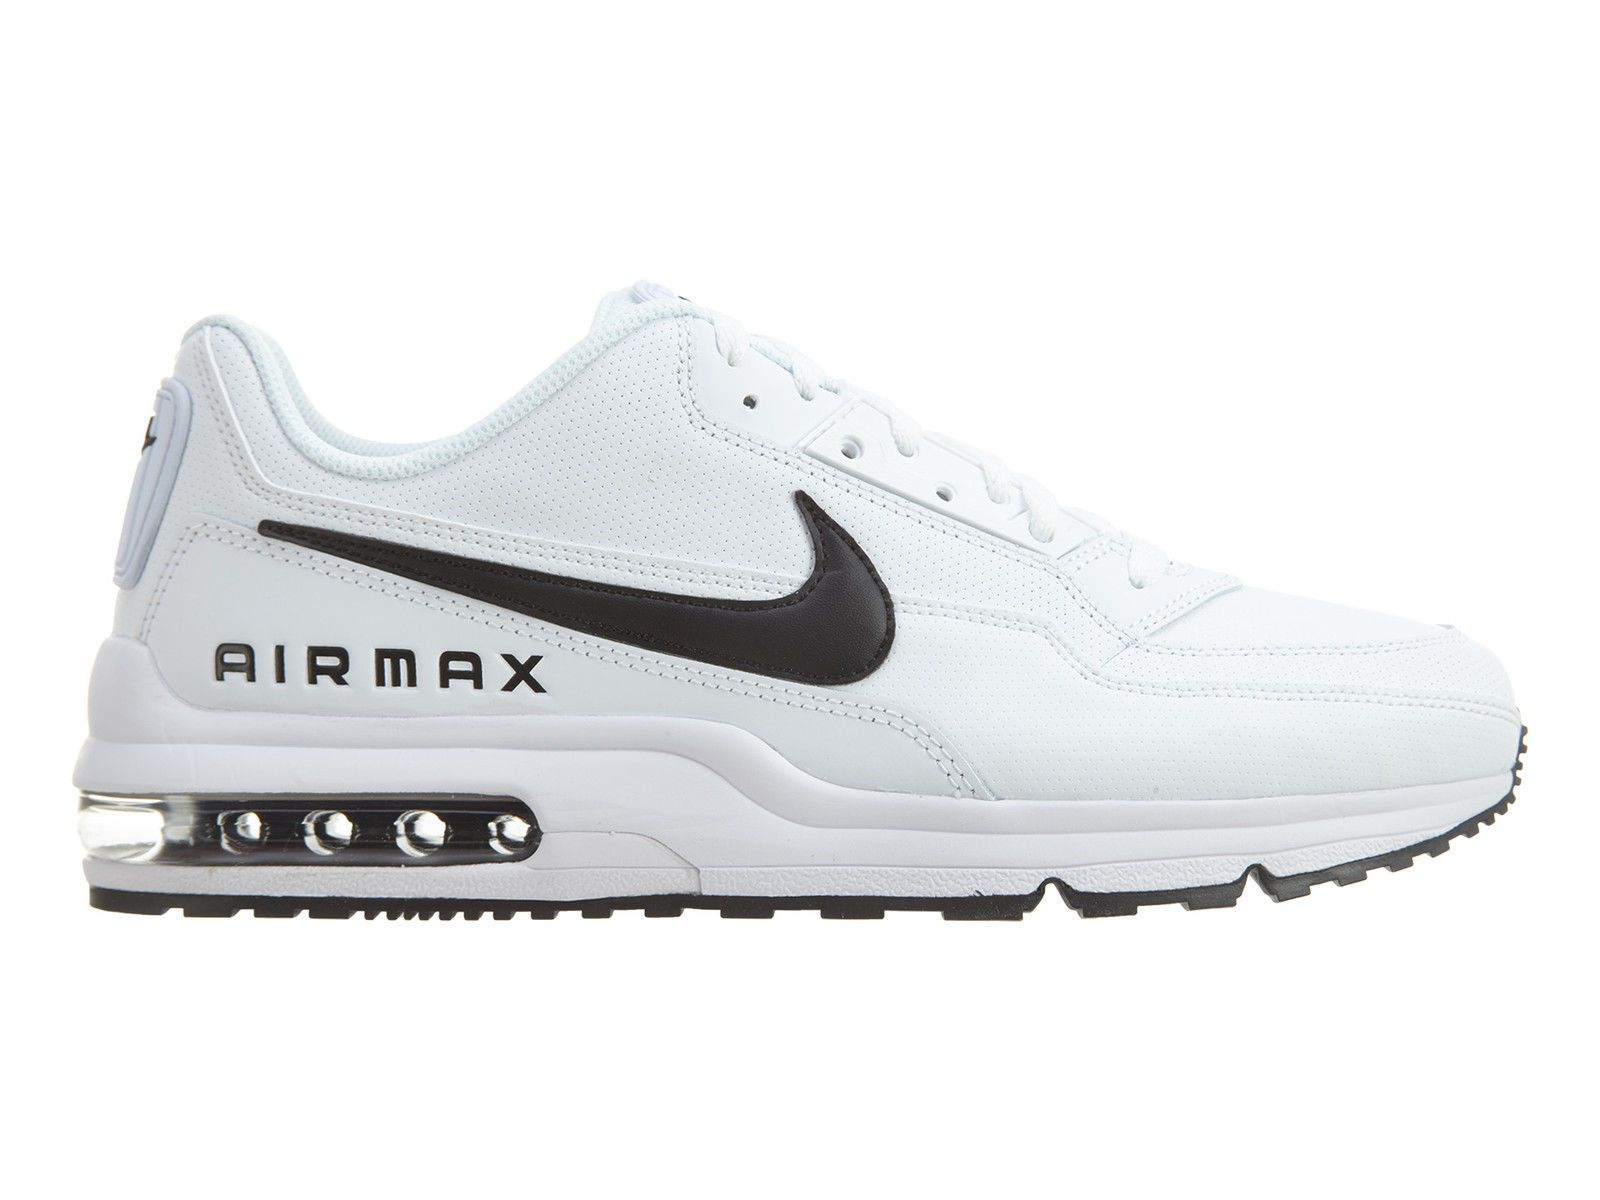 online store ec96e f97fb Nike Air Max LTD 3 Mens 687977-107 White Black Leather Running Shoes Size 10